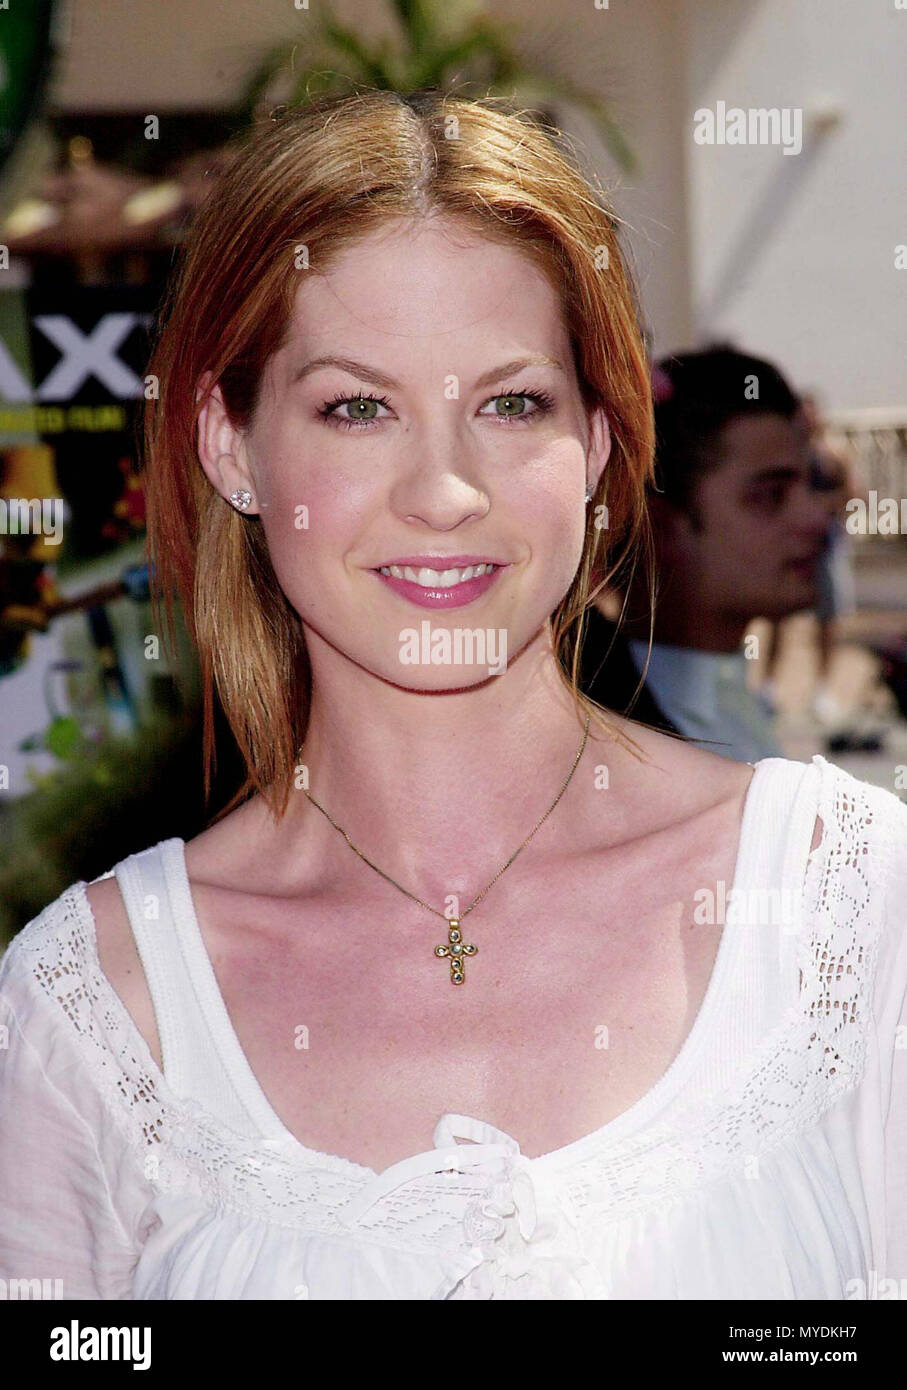 01 Oct 2000, Los Angeles, California, USA --- Jenna Elfman at the 3 Dimensions Imax Feature of the animated 'Cyberworld 3D'. 10.1.00-Los Angeles, CA --- Image by © . / USAJenna Elfman 074 Red Carpet Event, Vertical, USA, Film Industry, Celebrities,  Photography, Bestof, Arts Culture and Entertainment, Topix Celebrities fashion /  Vertical, Best of, Event in Hollywood Life - California,  Red Carpet and backstage, USA, Film Industry, Celebrities,  movie celebrities, TV celebrities, Music celebrities, Photography, Bestof, Arts Culture and Entertainment,  Topix,  vertical, one person, inquiry tsun - Stock Image